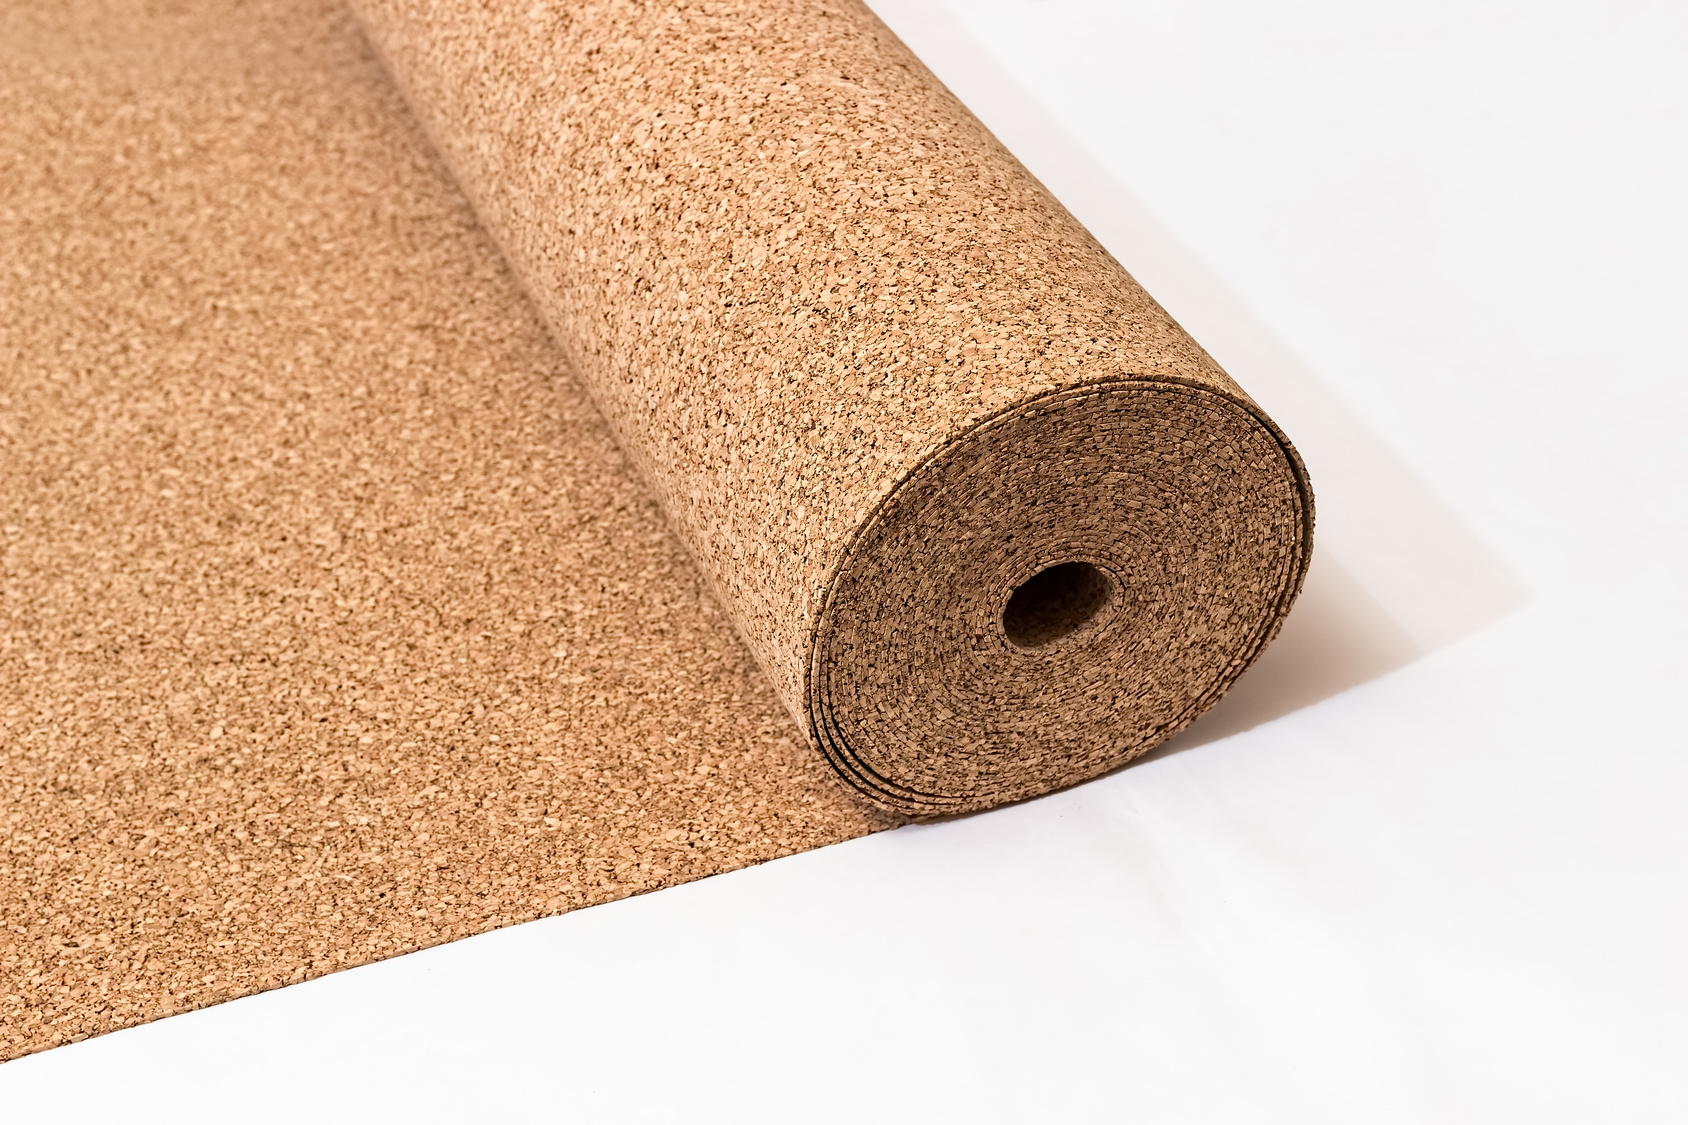 Roll of wood cork on a white background.